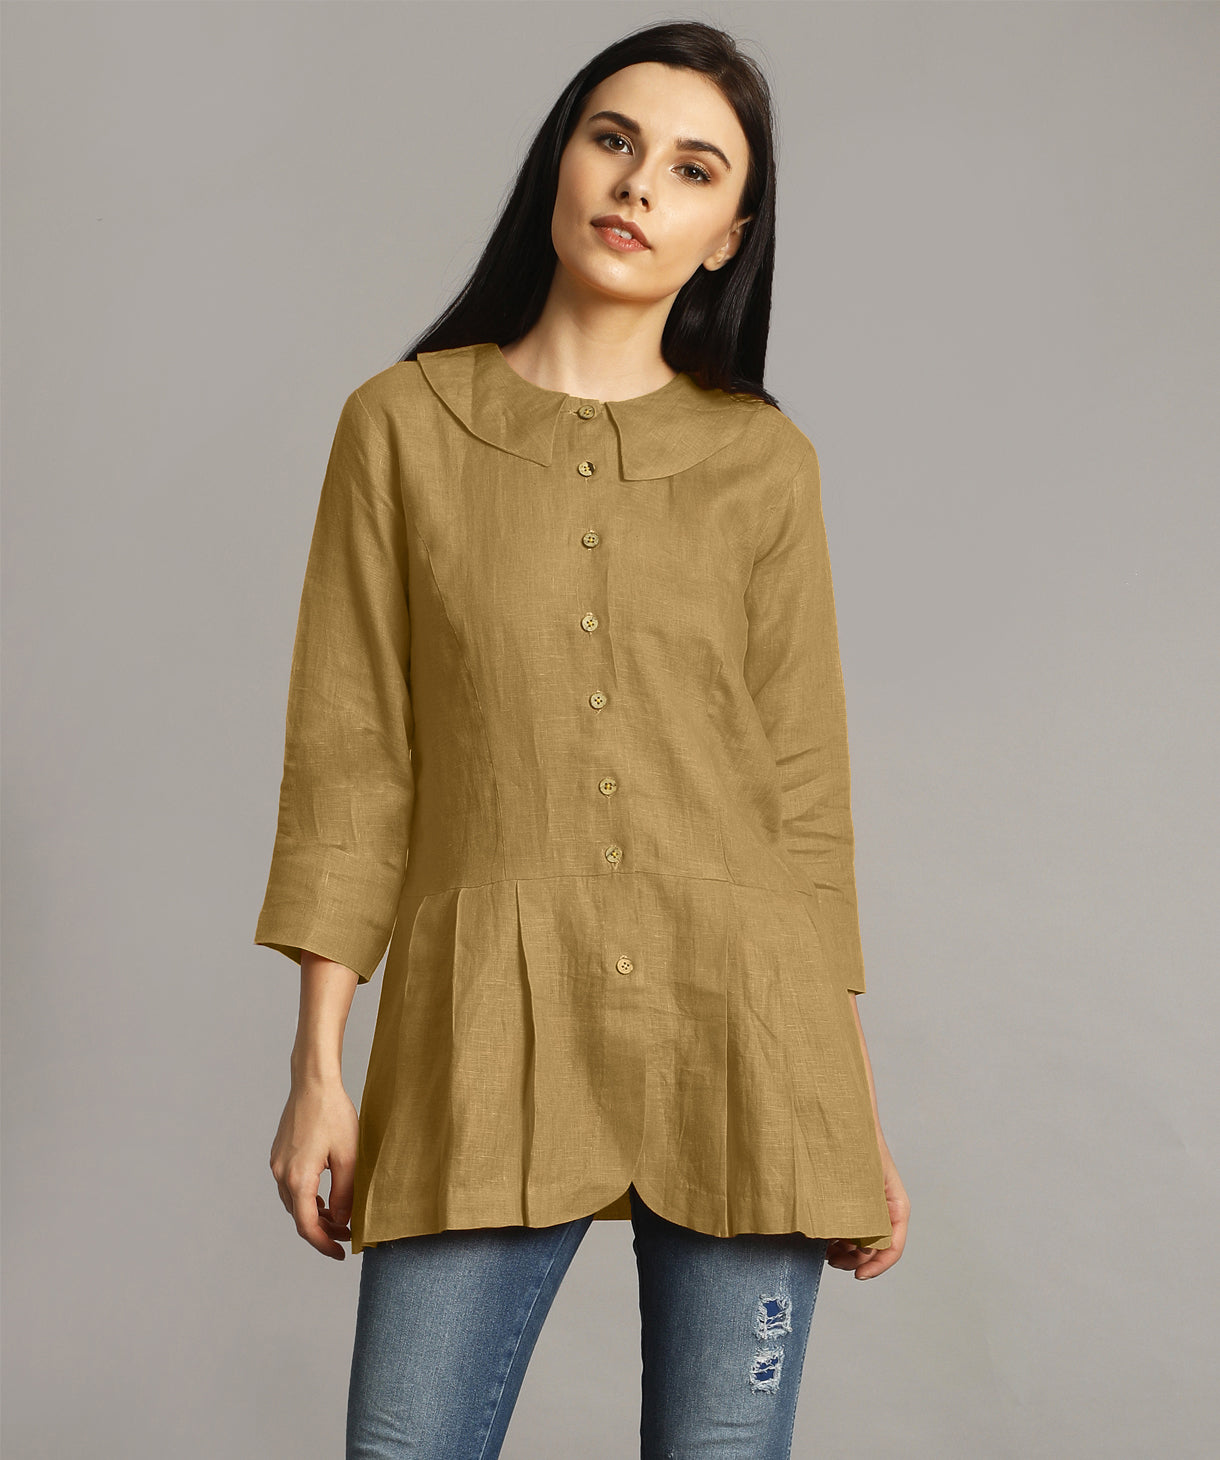 Yellow Ochre Peter Pan Neck Linen Tunic